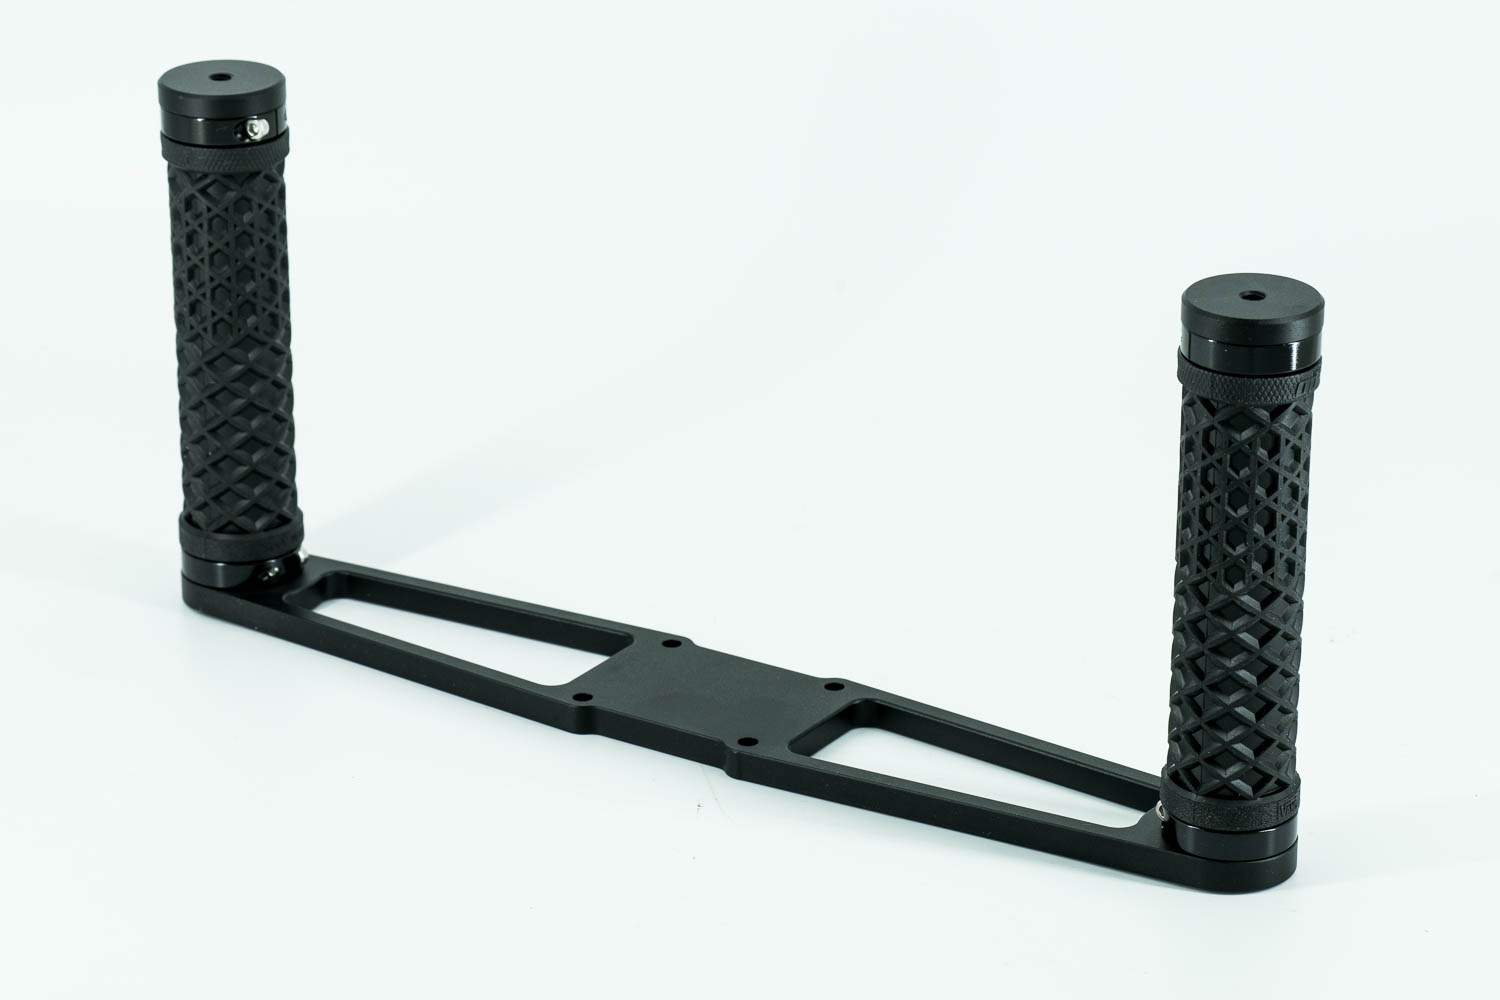 Dual Handle Video Grip